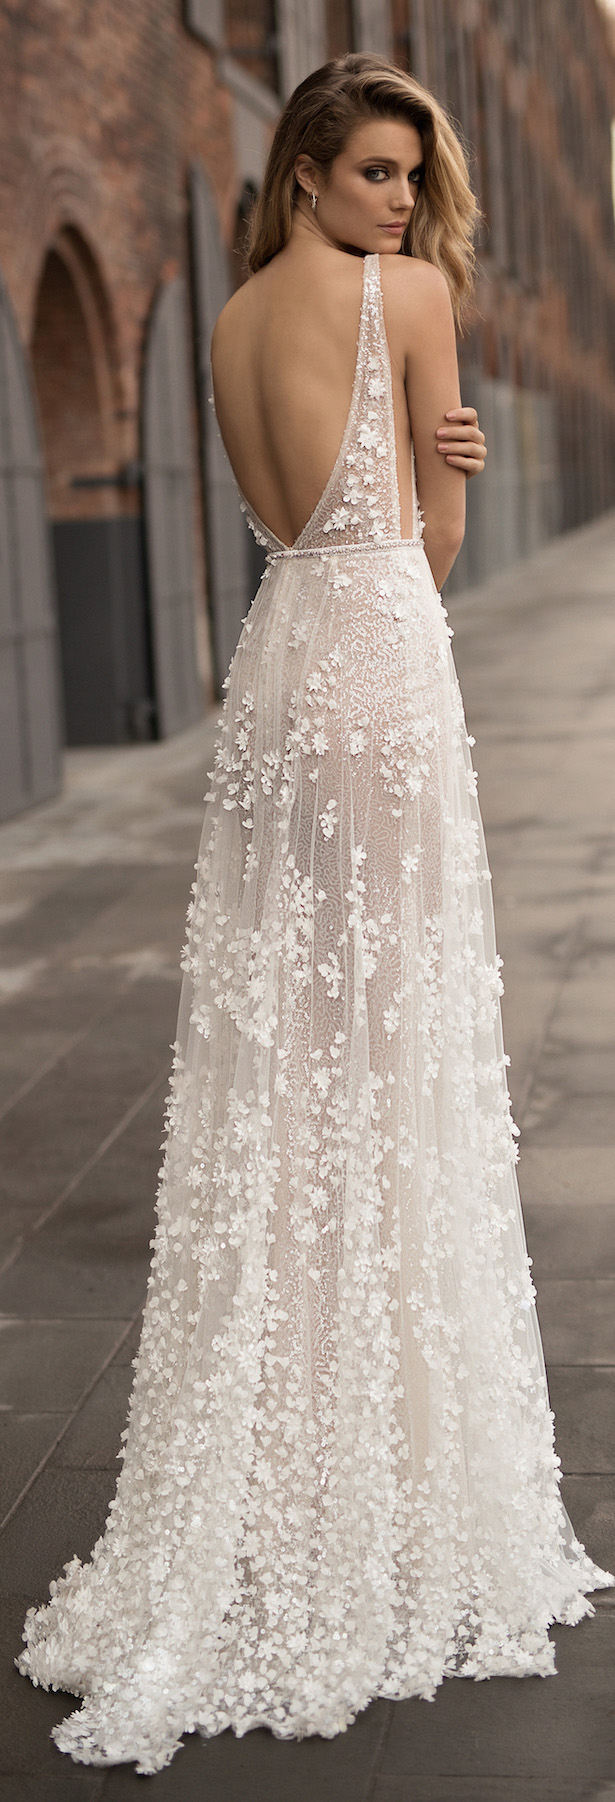 Berta bridal wedding dresses gown and dress gallery for Berta wedding dress collection